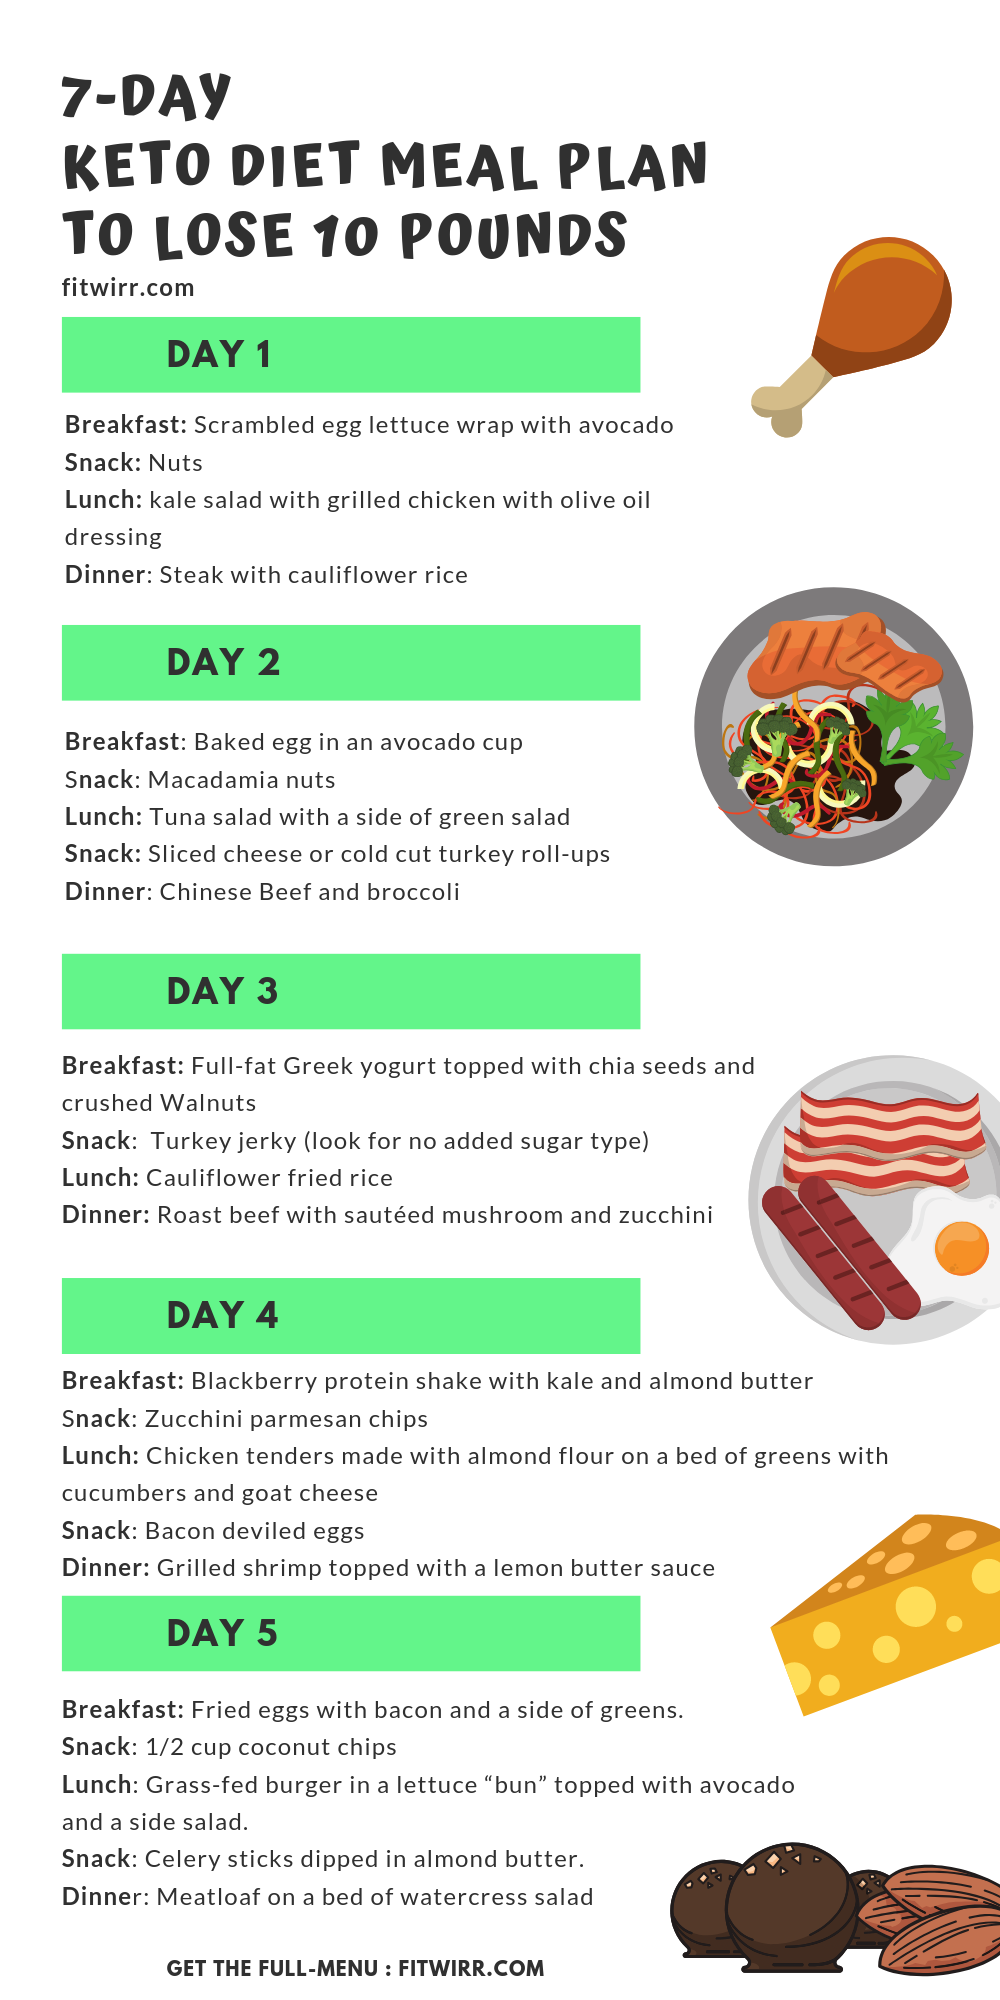 Keto Diet Menu 7 Day Meal Plan For Beginners To Lose 10 Lbs In 2020 Ketogenic Diet Meal Plan Keto Diet Menu Diet Meal Plans